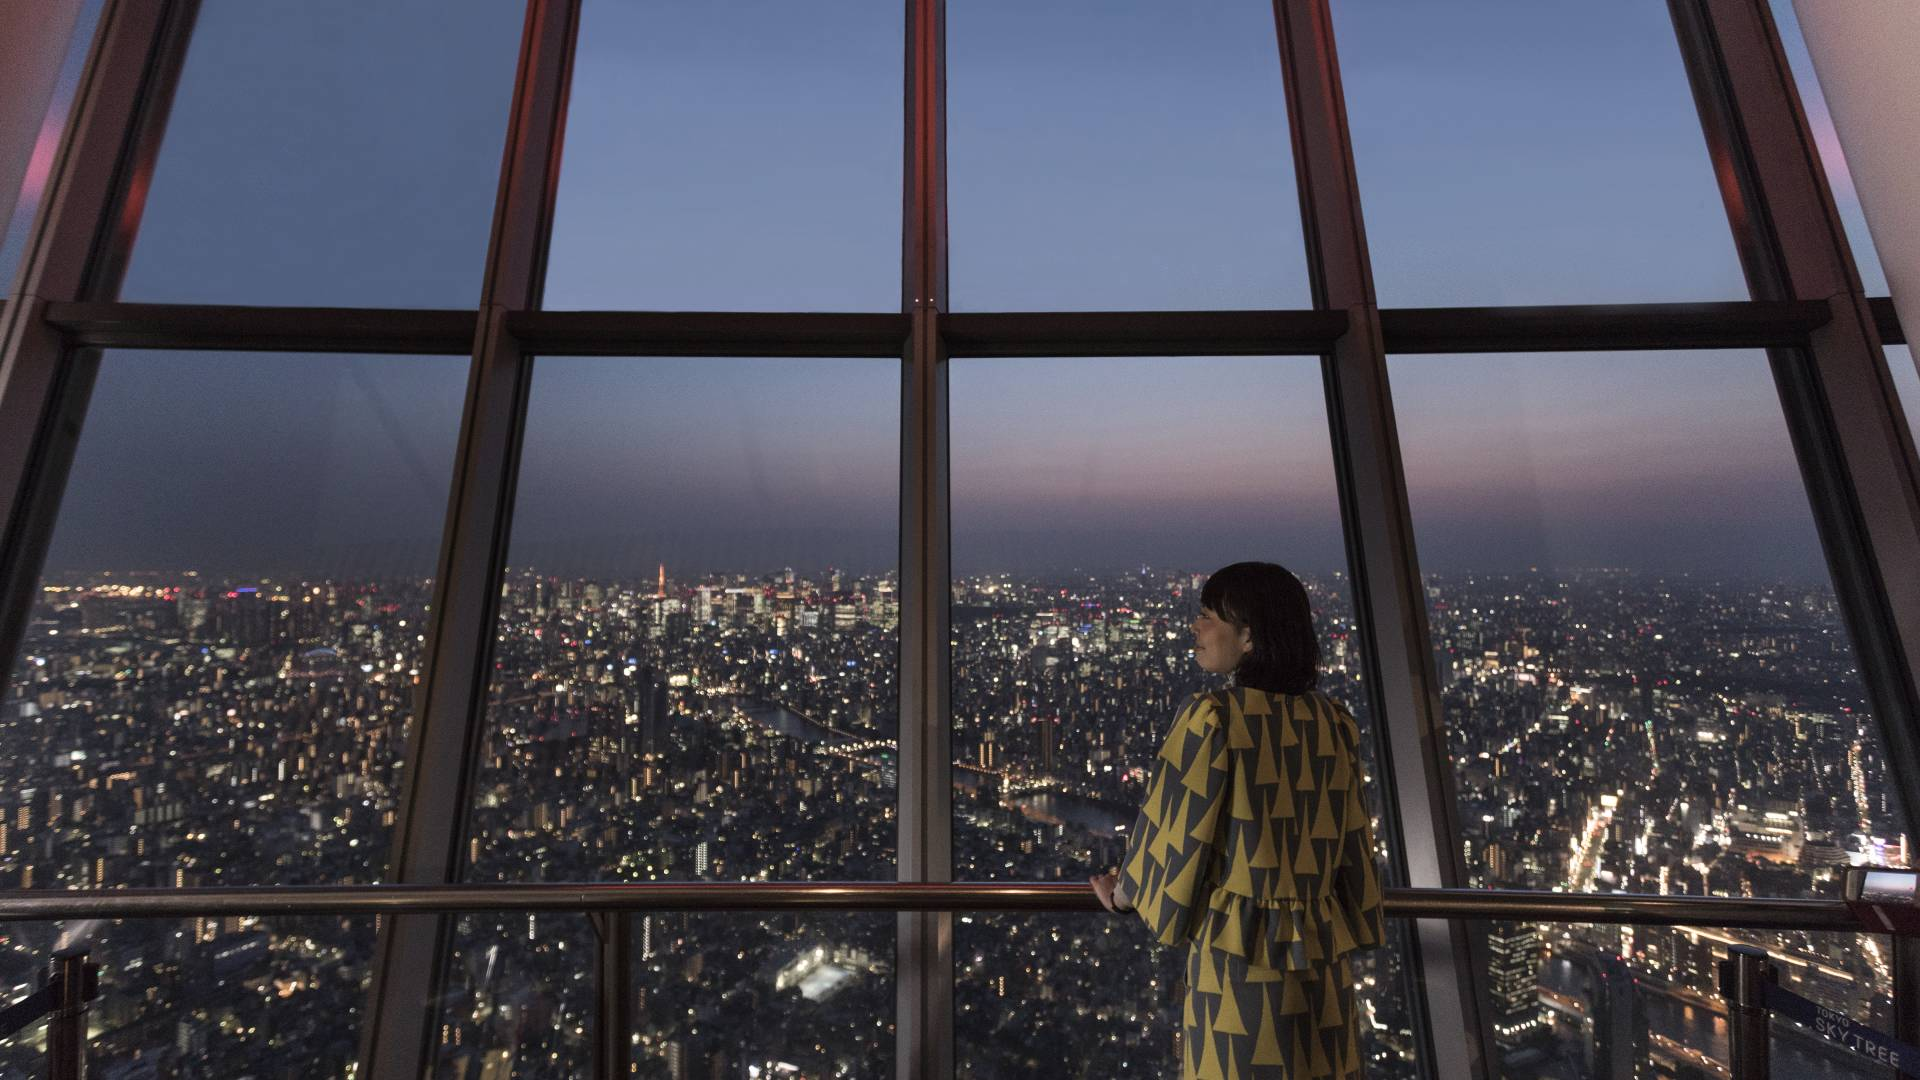 Unique perspectives on Tokyo, from above and below